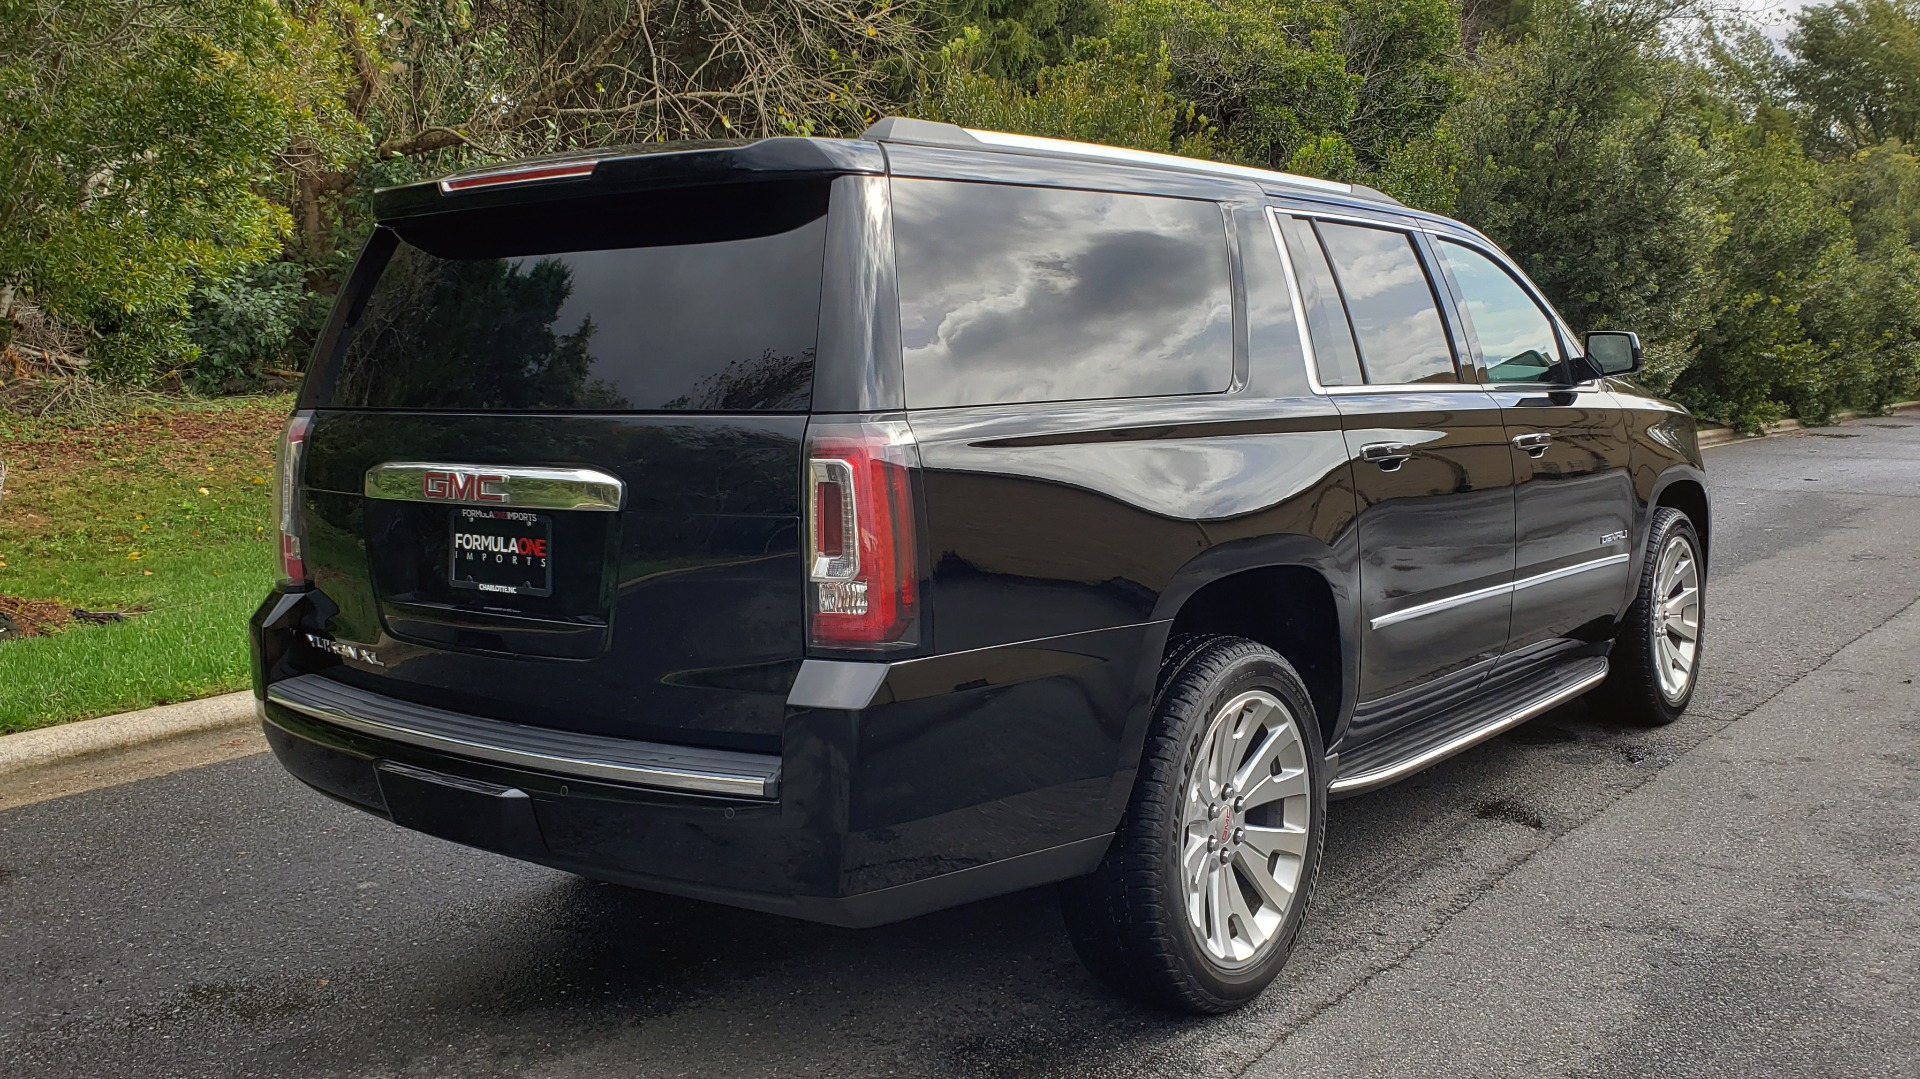 Used 2017 GMC YUKON XL DENALI 4WD / NAV / SUNROOF / ENT / 3-ROWS / BOSE / REARVIEW for sale $48,695 at Formula Imports in Charlotte NC 28227 6